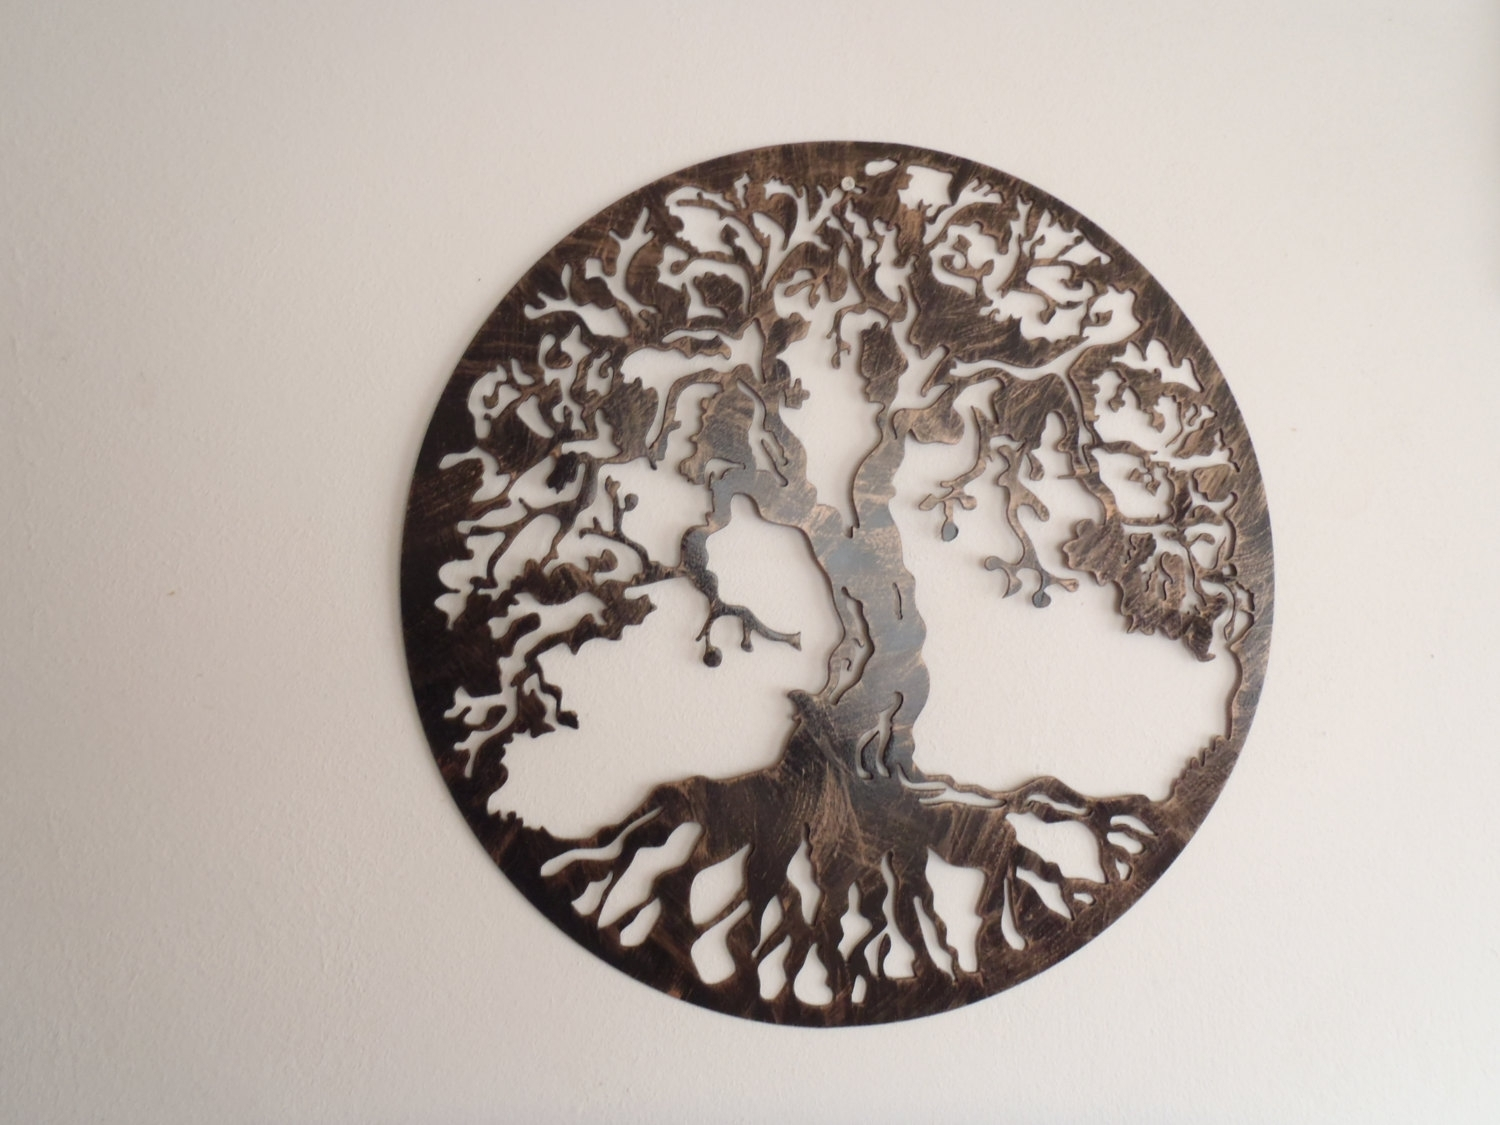 Tree Of Life Antique Look Fabulous Tree Of Life Wall Decor – Home In Best And Newest Tree Of Life Wall Art (View 14 of 15)